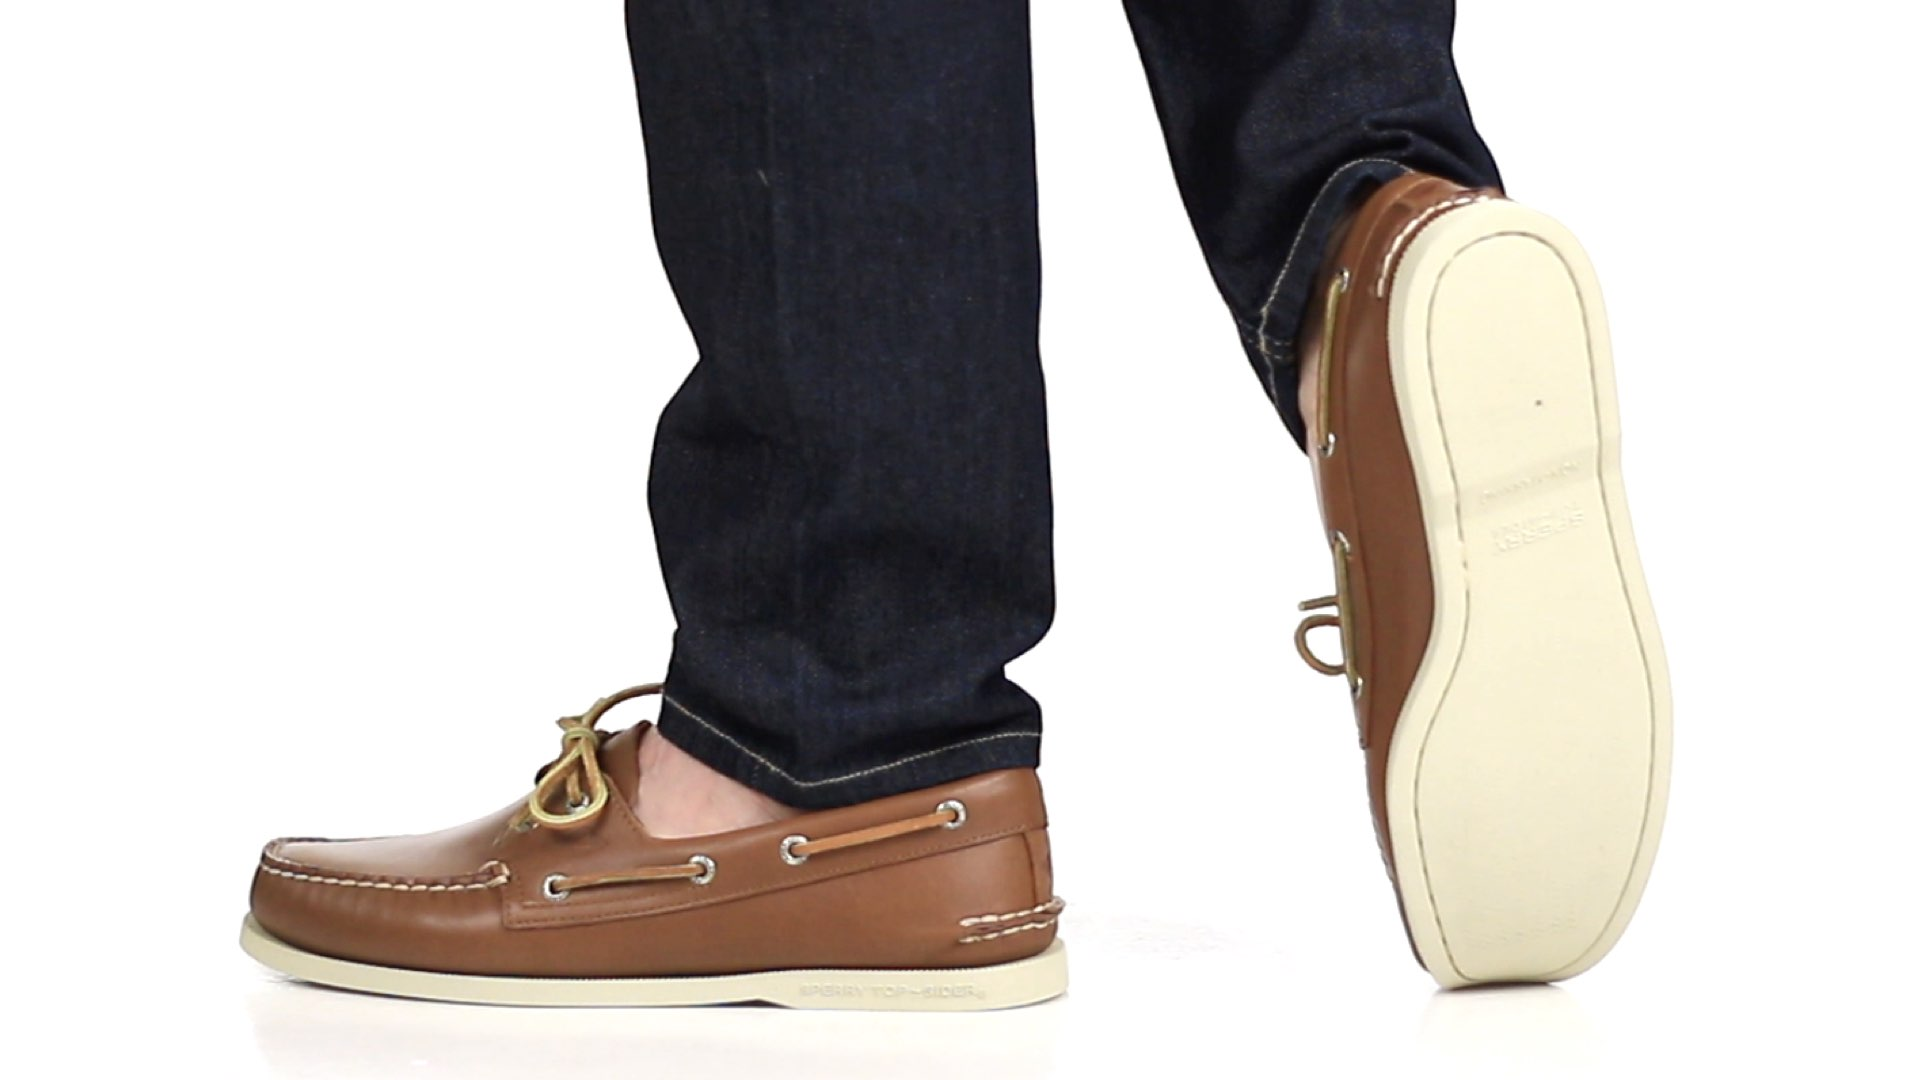 0c96ccacb46 13 Shoes to Wear with Jeans - The Ultimate Guide  2018 UPDATE